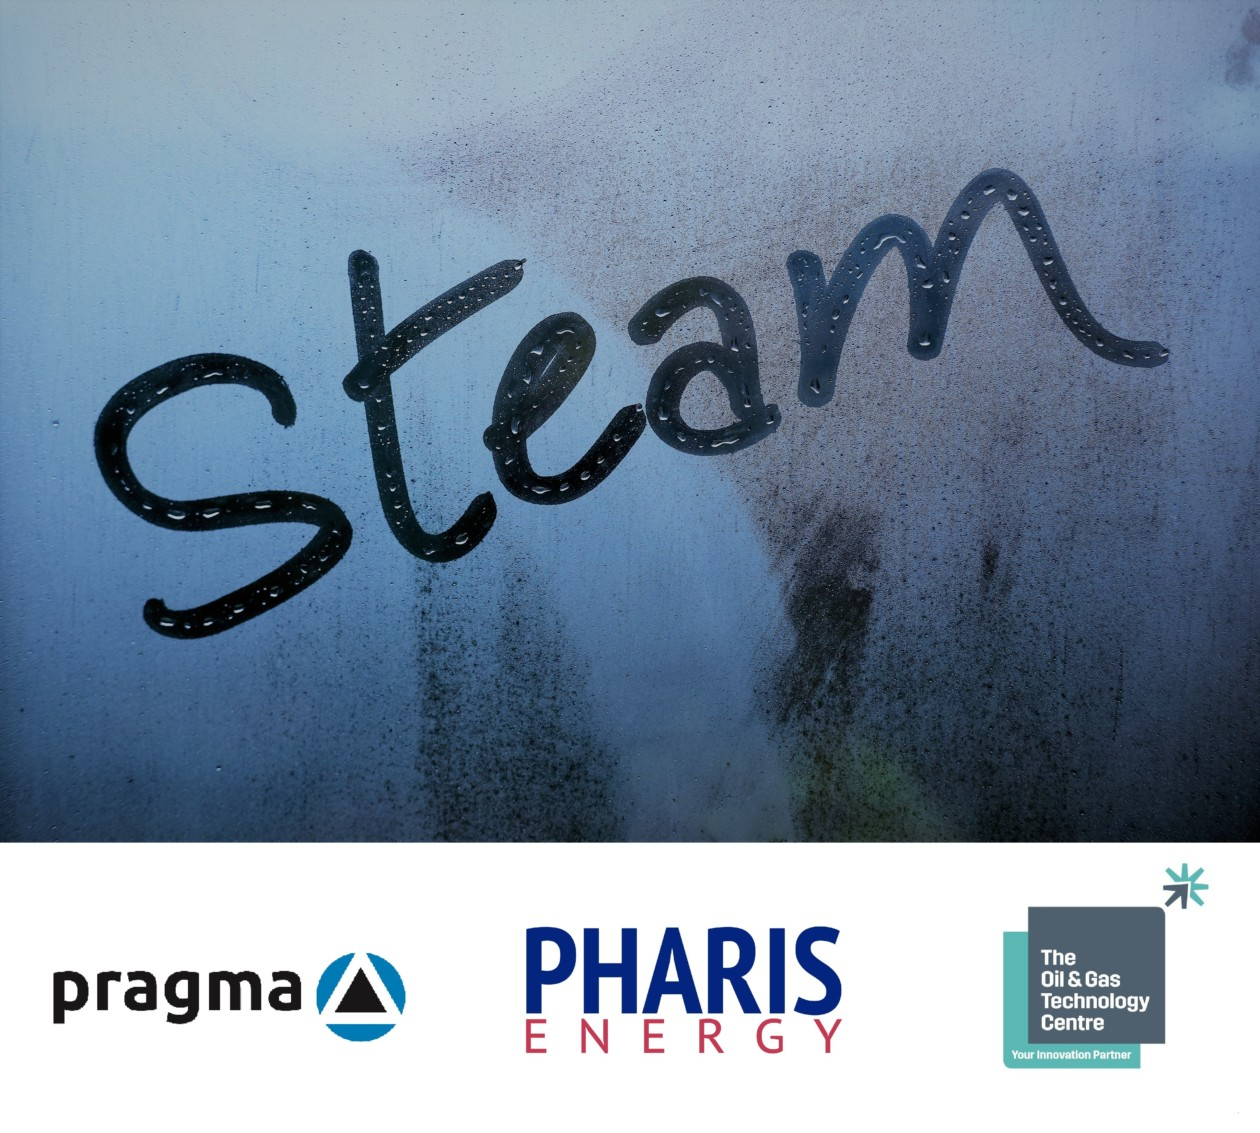 Pragma and Pharis Energy to Develop a Downhole Steam Injection Safety Valve with Support from OGTC